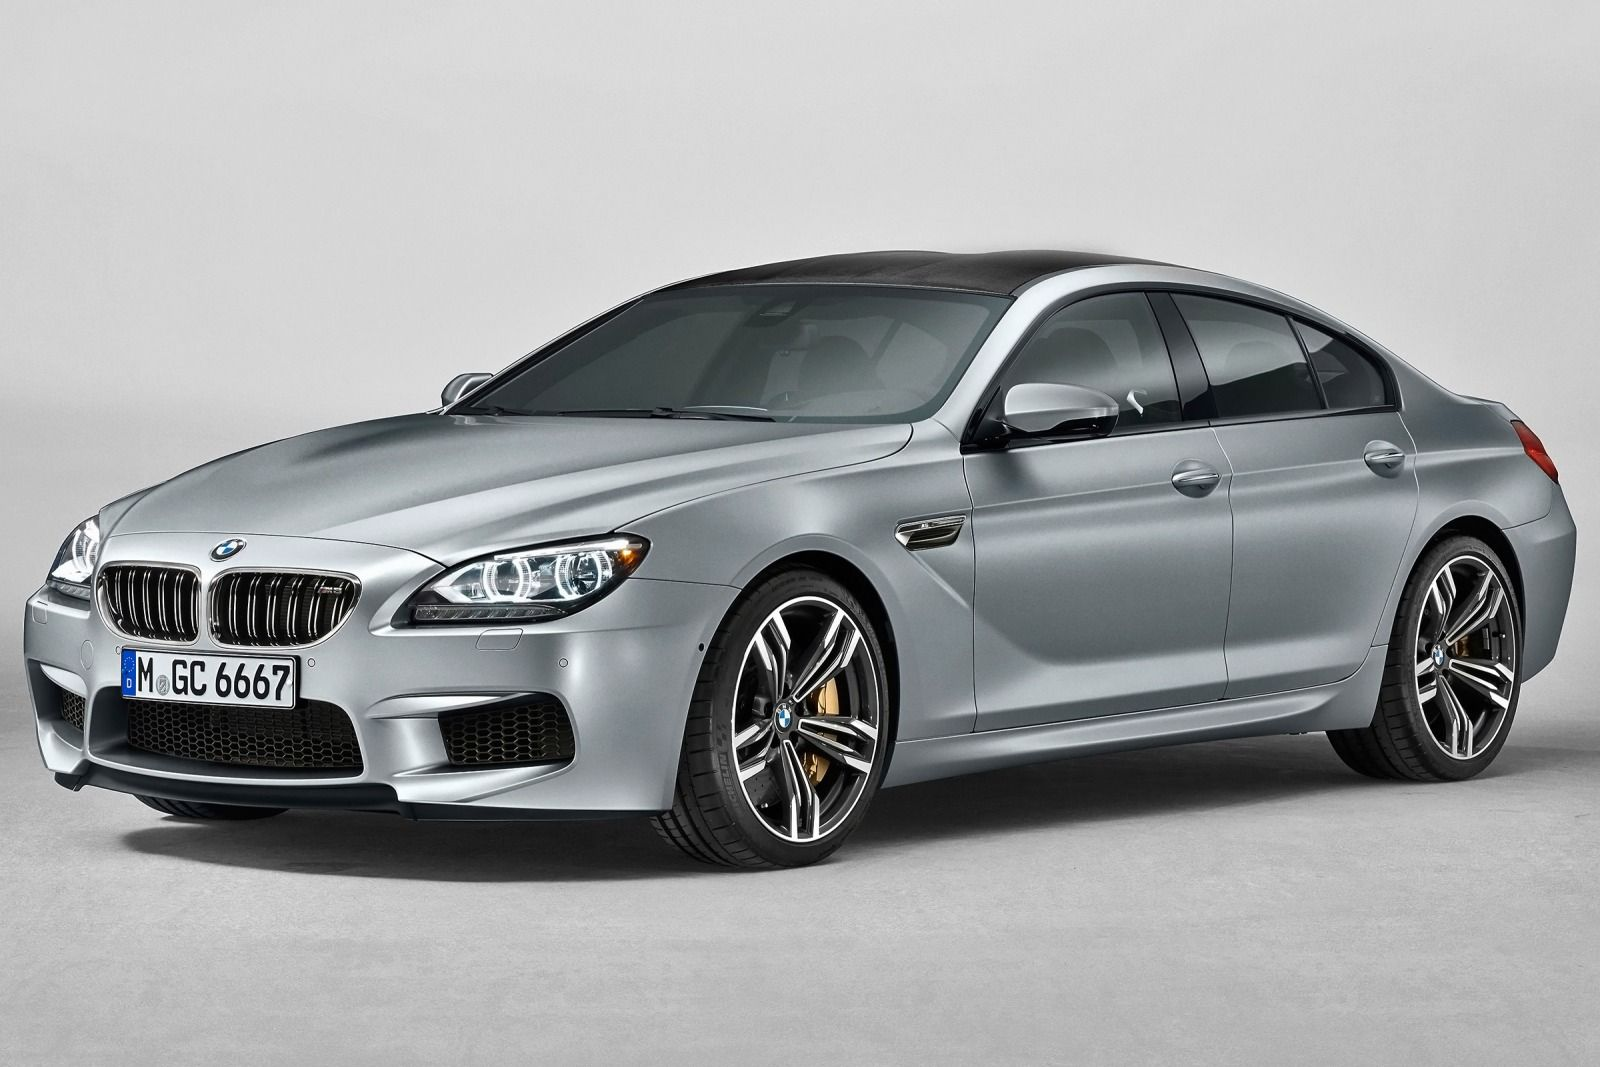 2016 Bmw M6 Gran Coupe #3